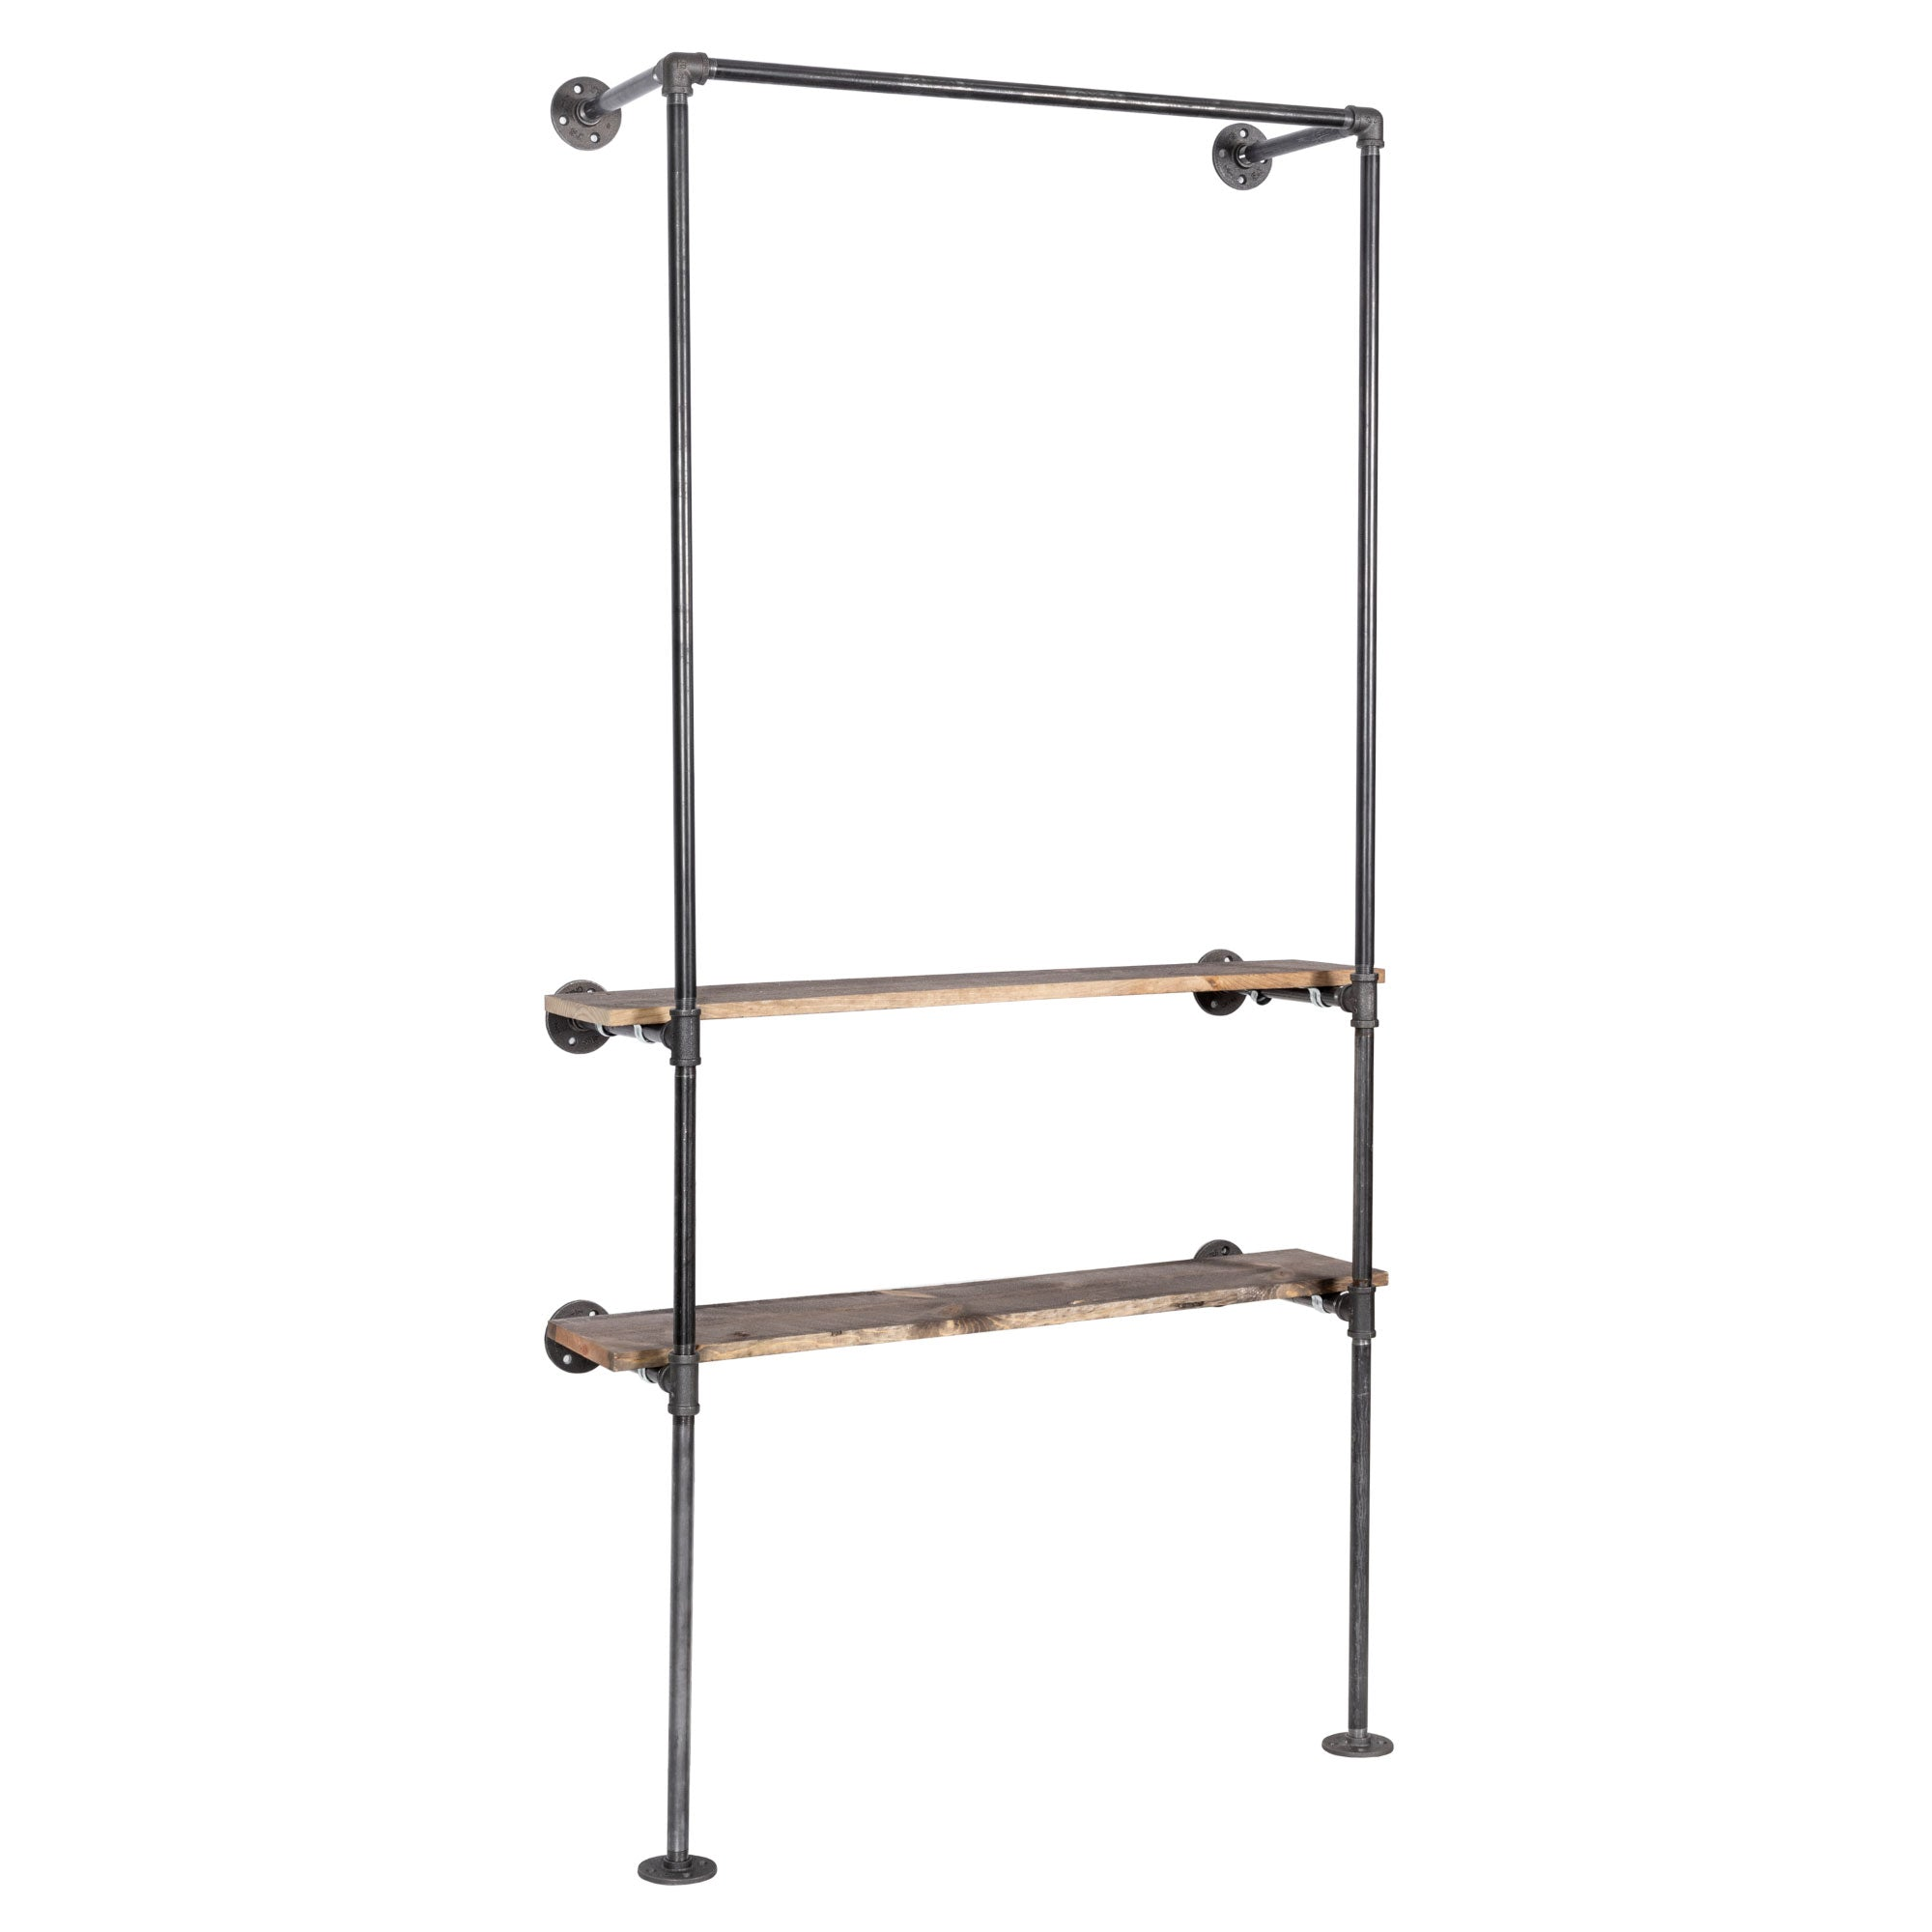 2 Shelf-wall Mounted Clothing Rack By PIPE DECOR - Pipe Decor